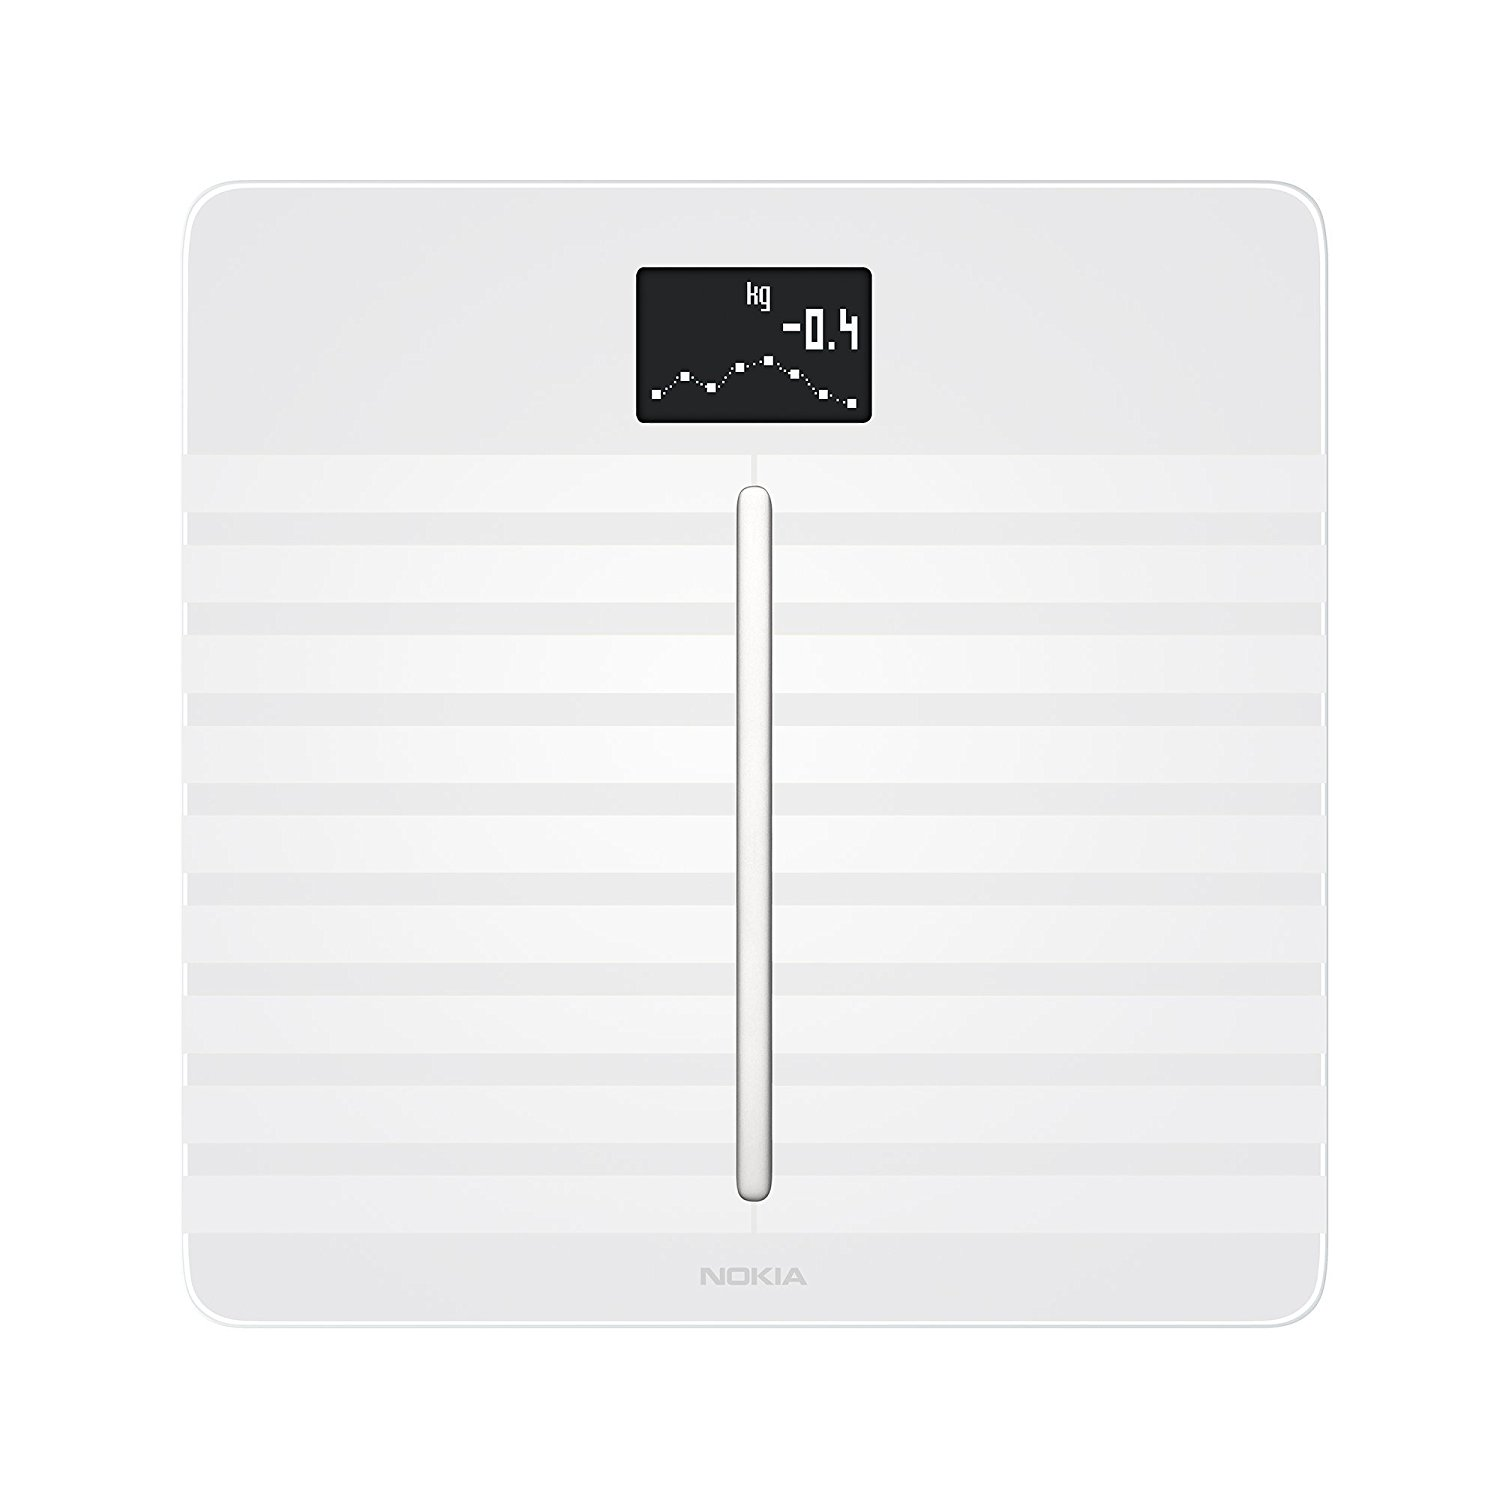 Nokia Body Cardio Full Body Composition WiFi Scale - White